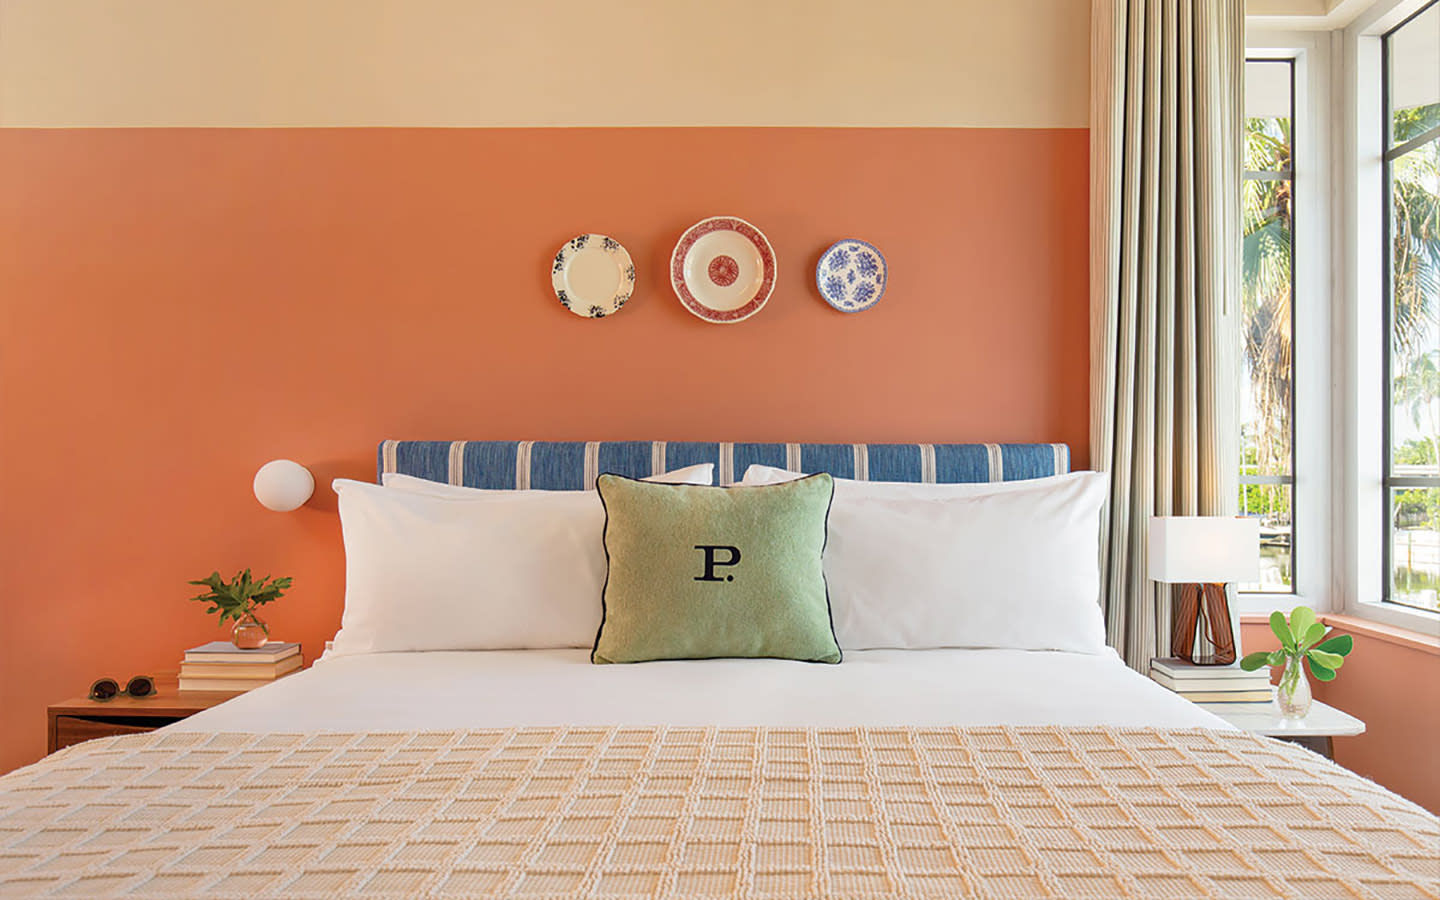 Palihouse Miami Room